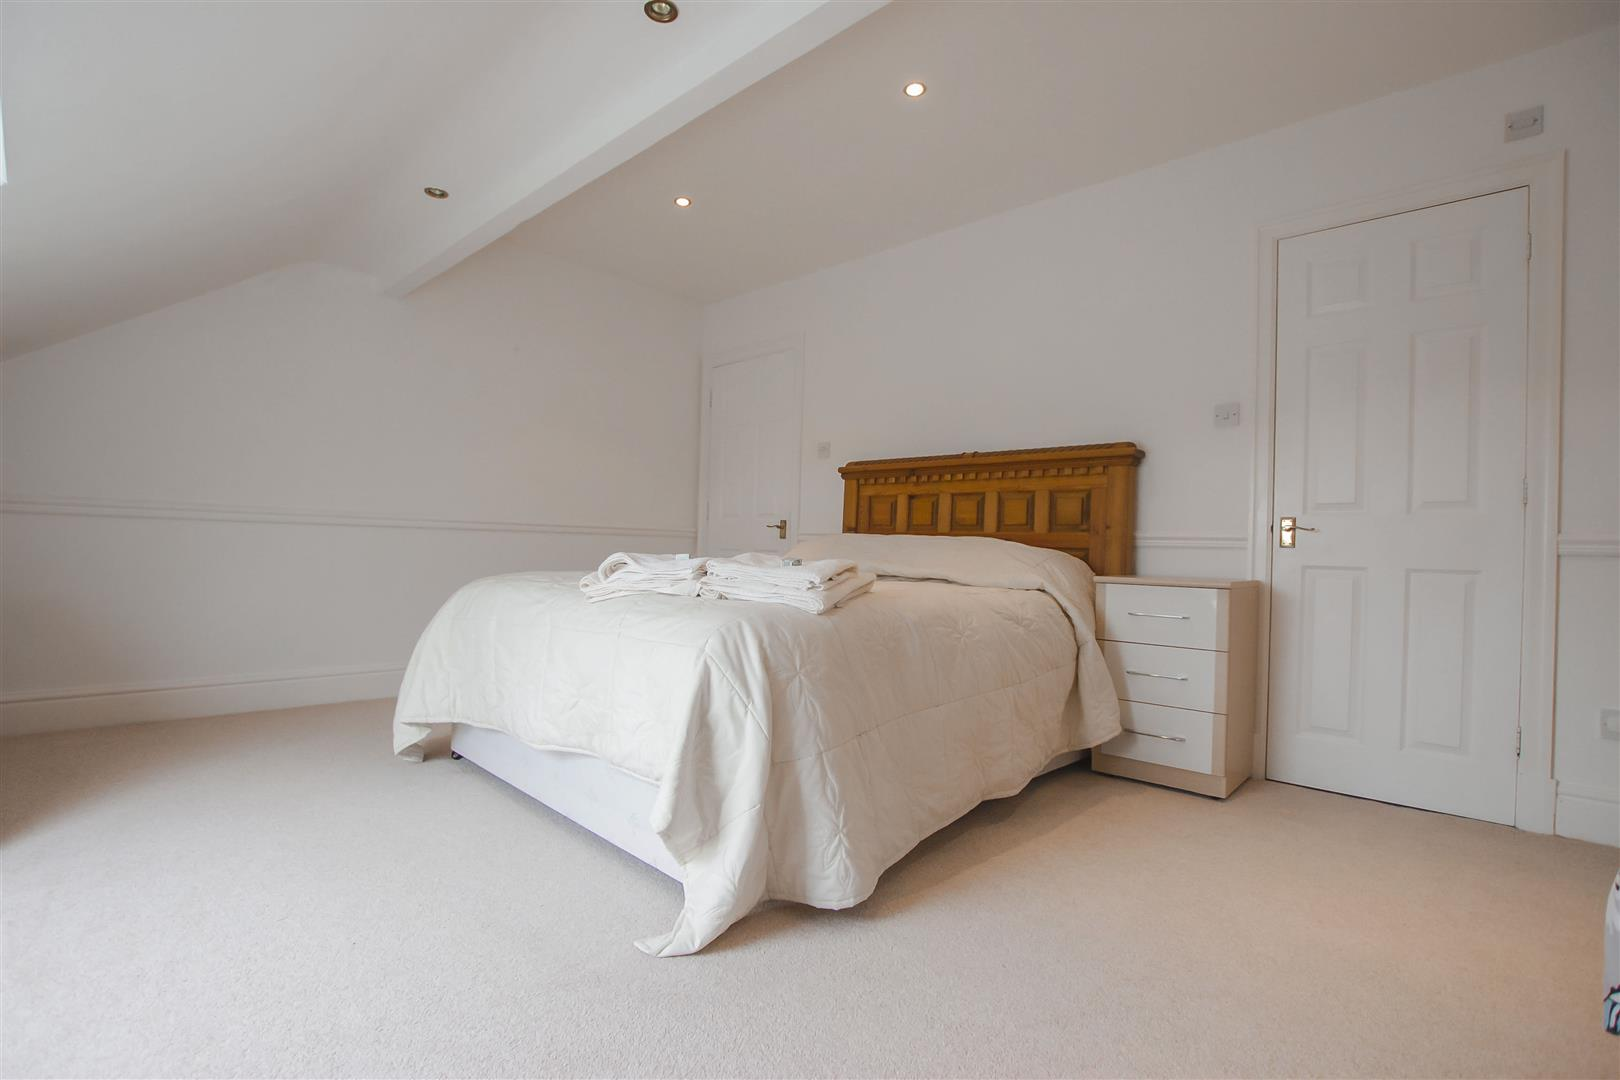 4 Bedroom Townhouse House For Sale - Image 10